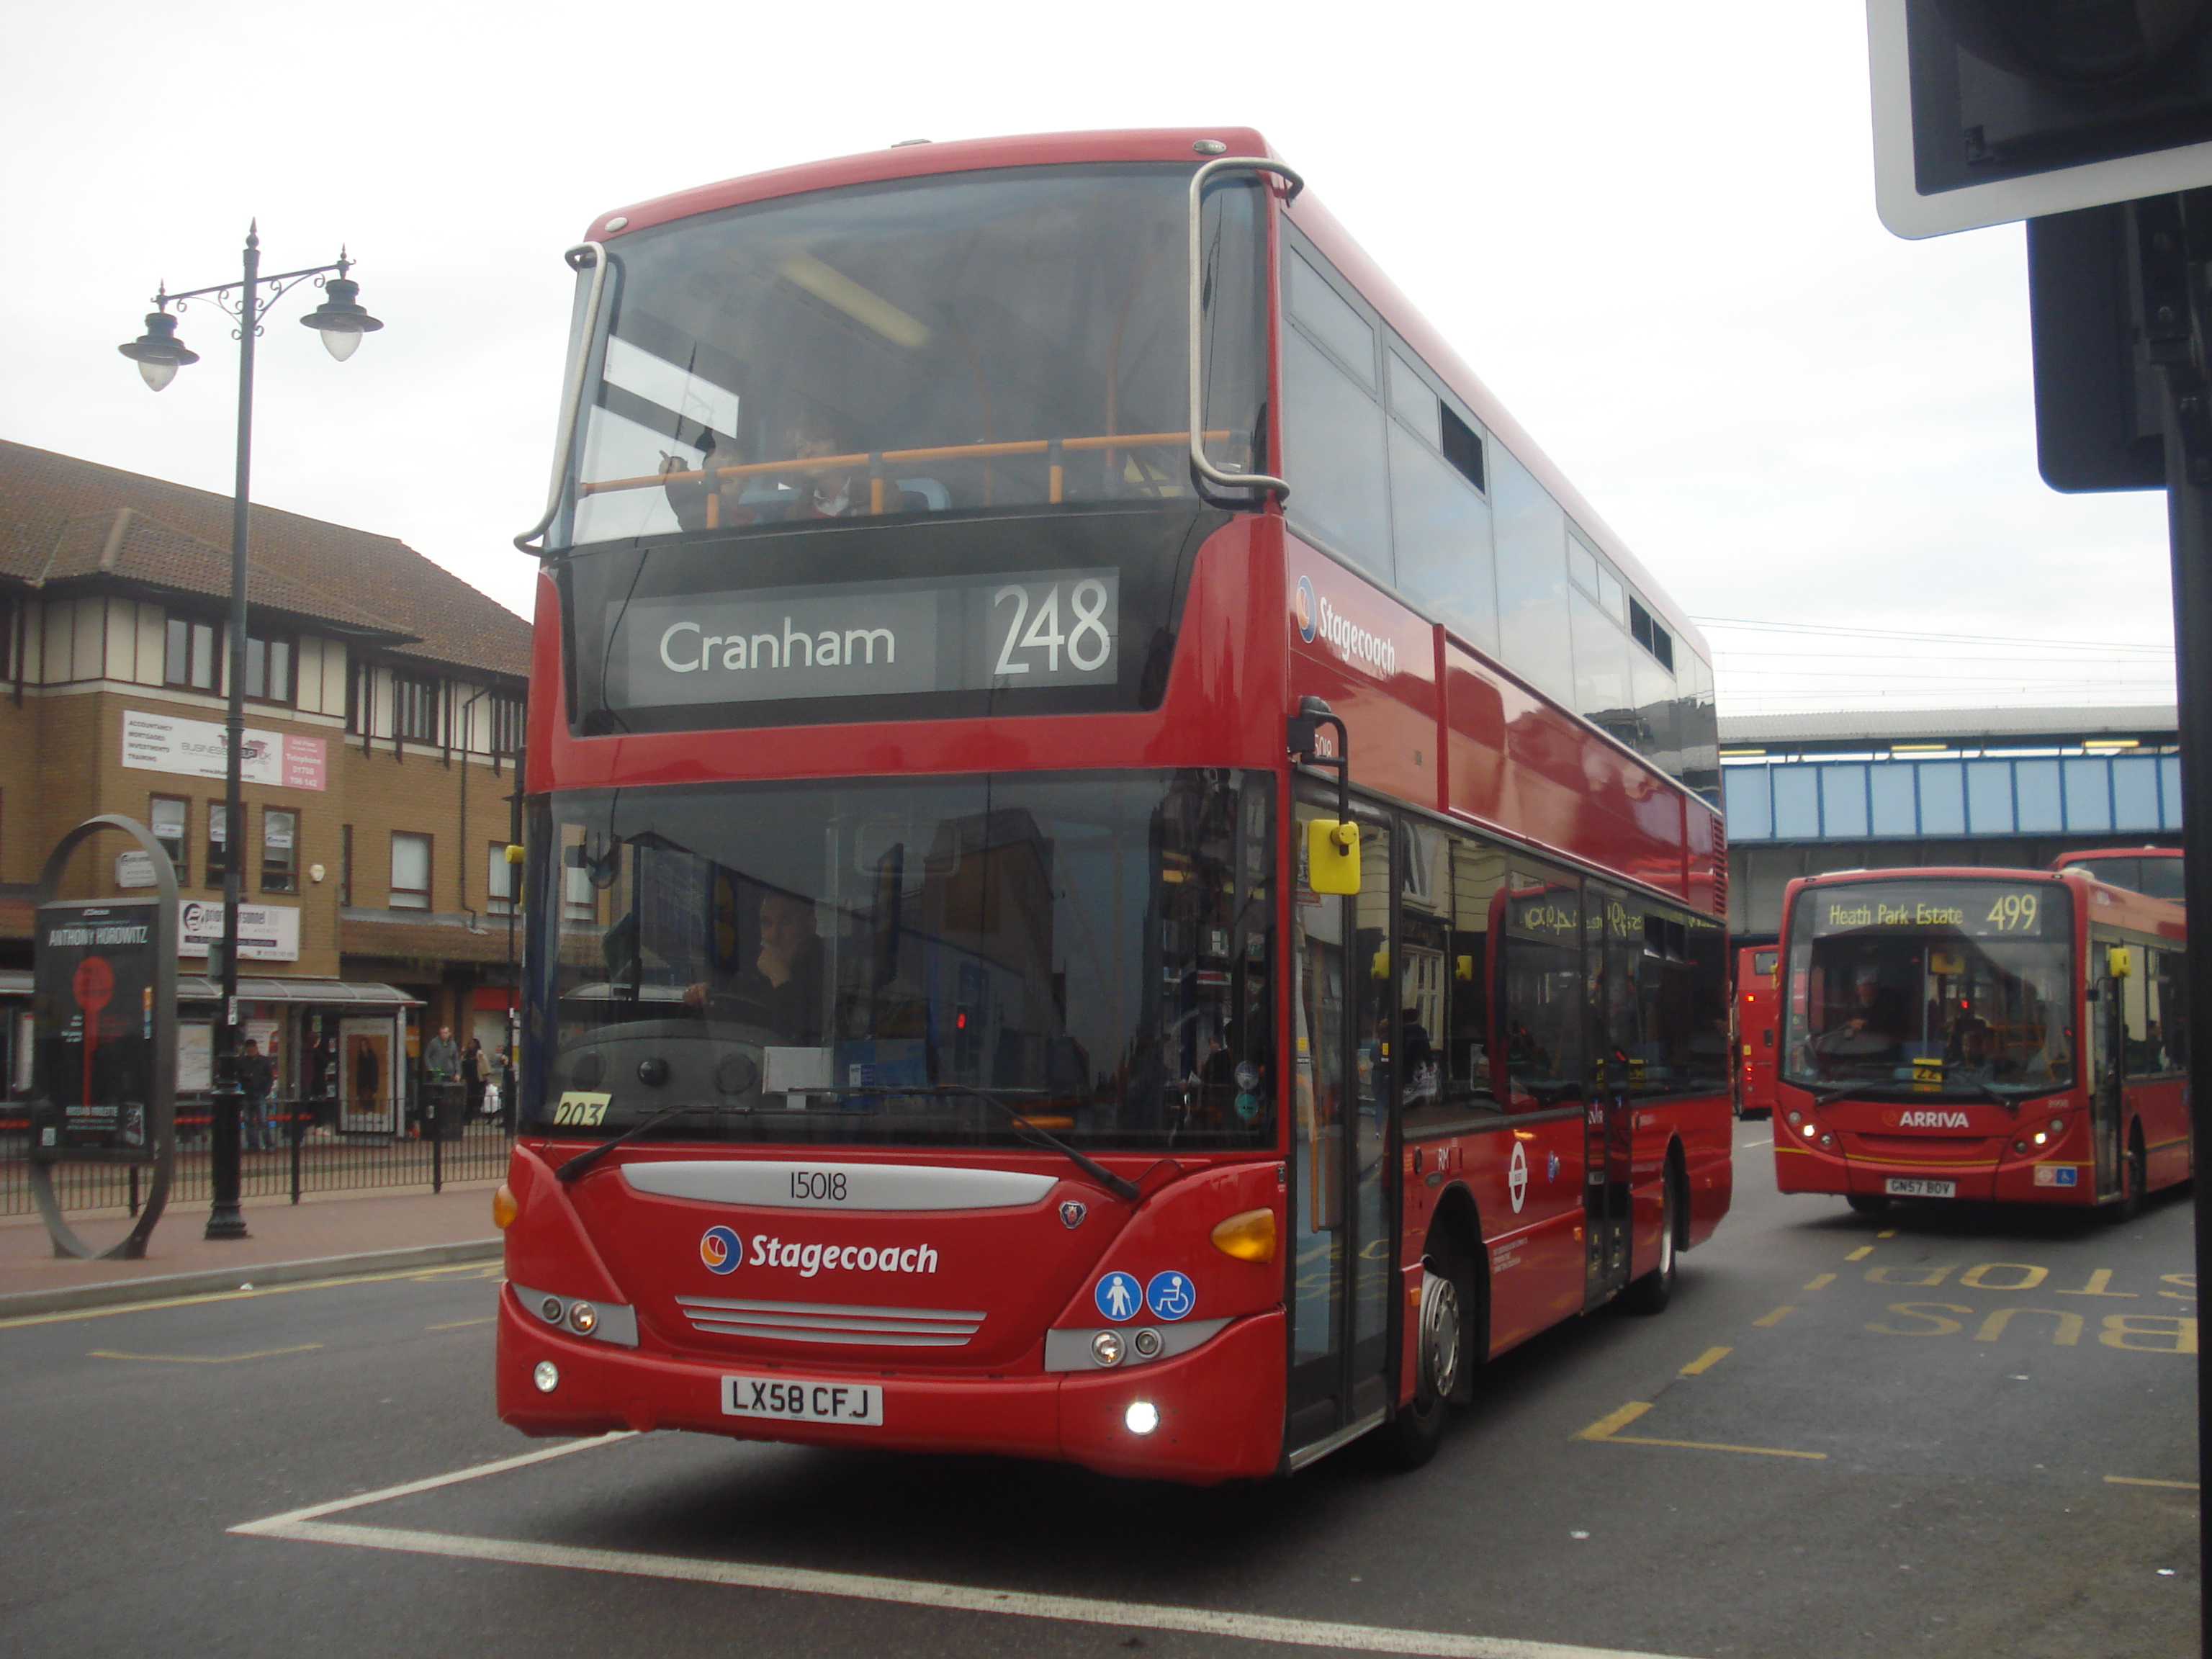 File:Stagecoach 15018 on Route 248, Romford Station.jpg